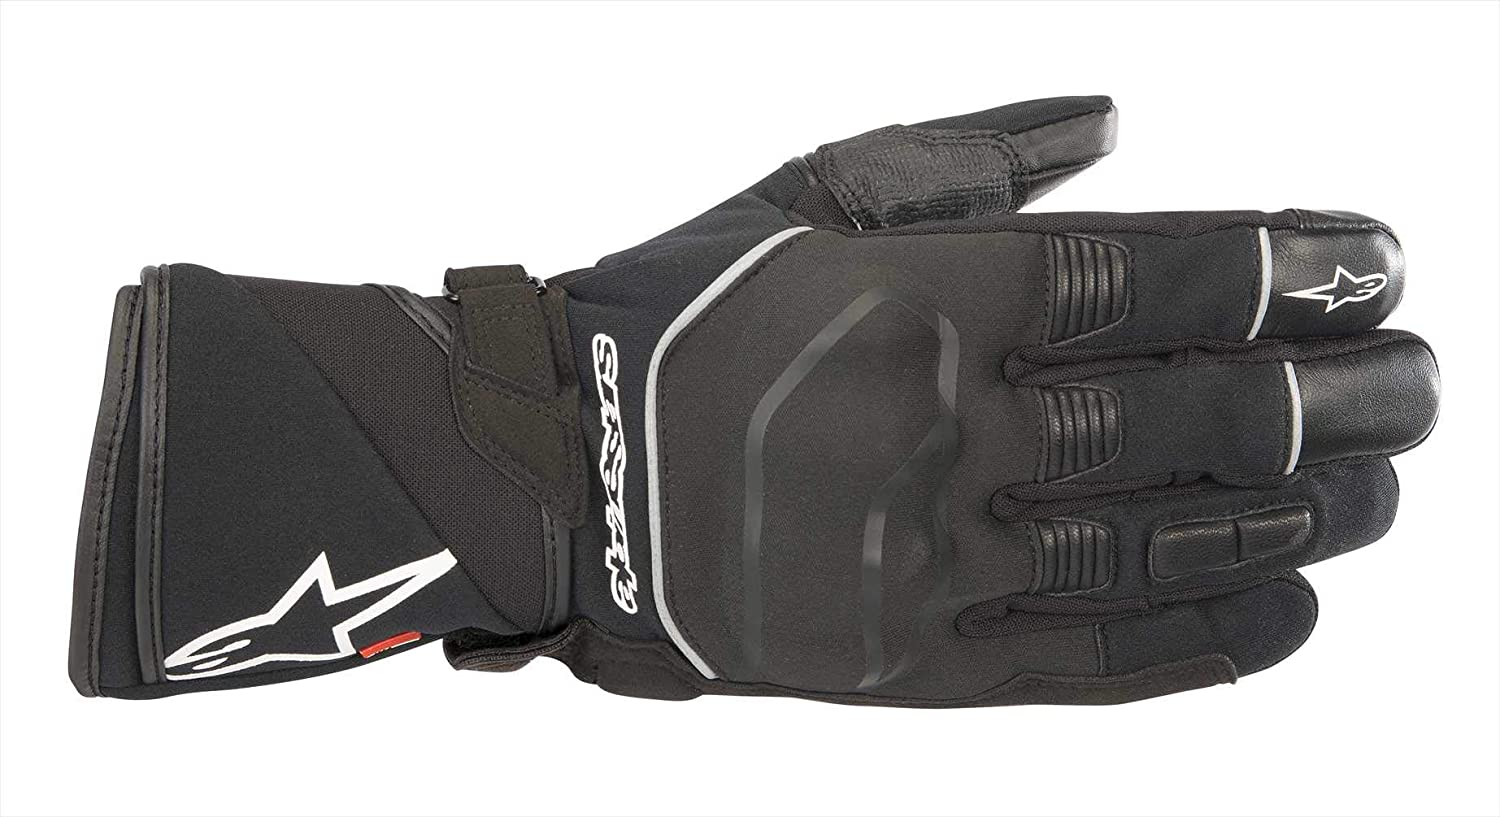 Alpinestars Men's Large-scale sale Andes Touring Outdry Waterproof Motorcycle Rid 5% OFF